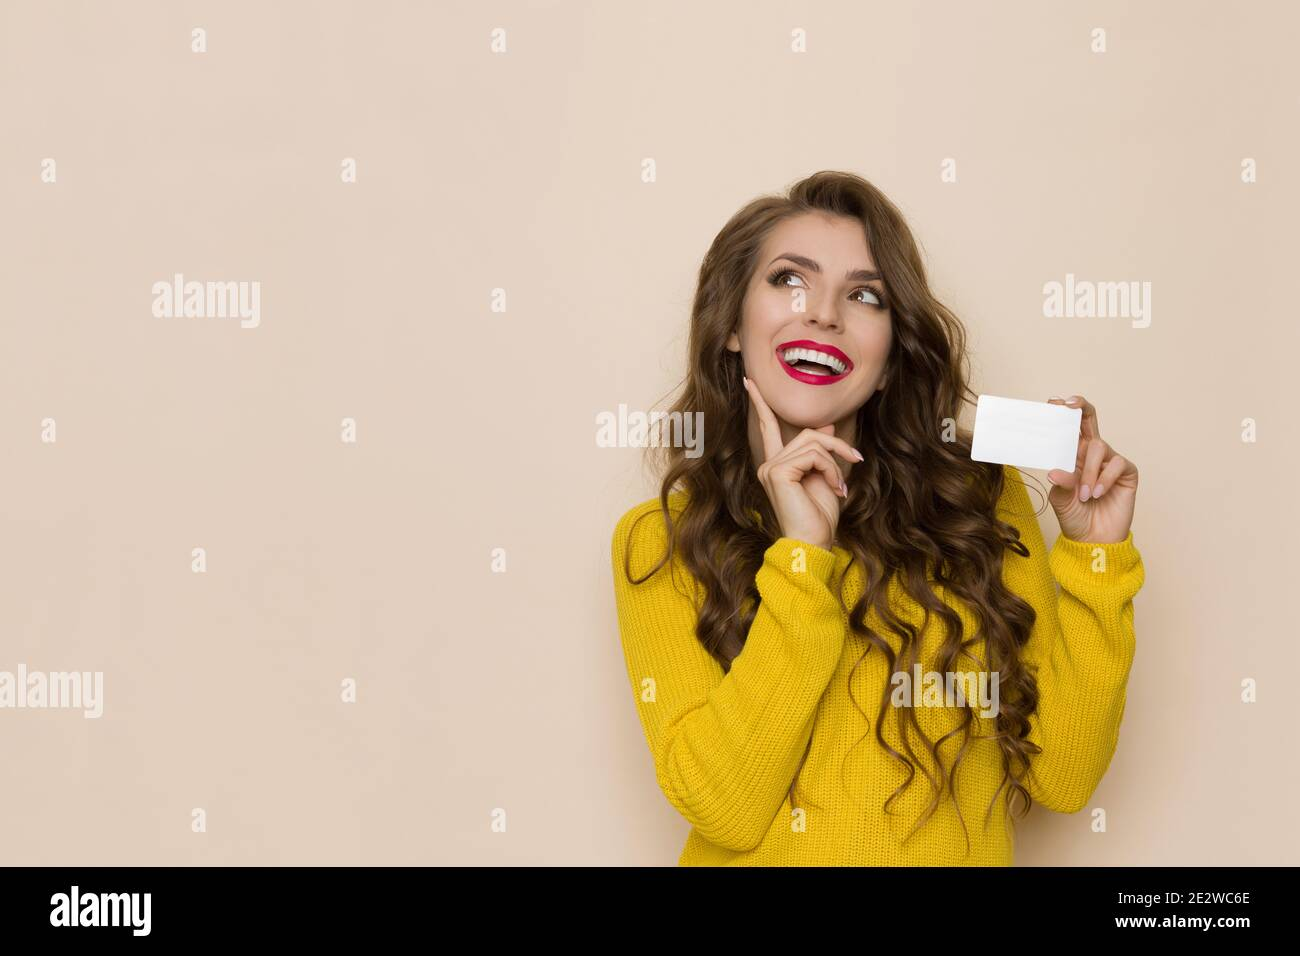 Casual young woman is holding white plastic card, smiling, looking up and thinking. Waist up studio shot on beige background. Stock Photo